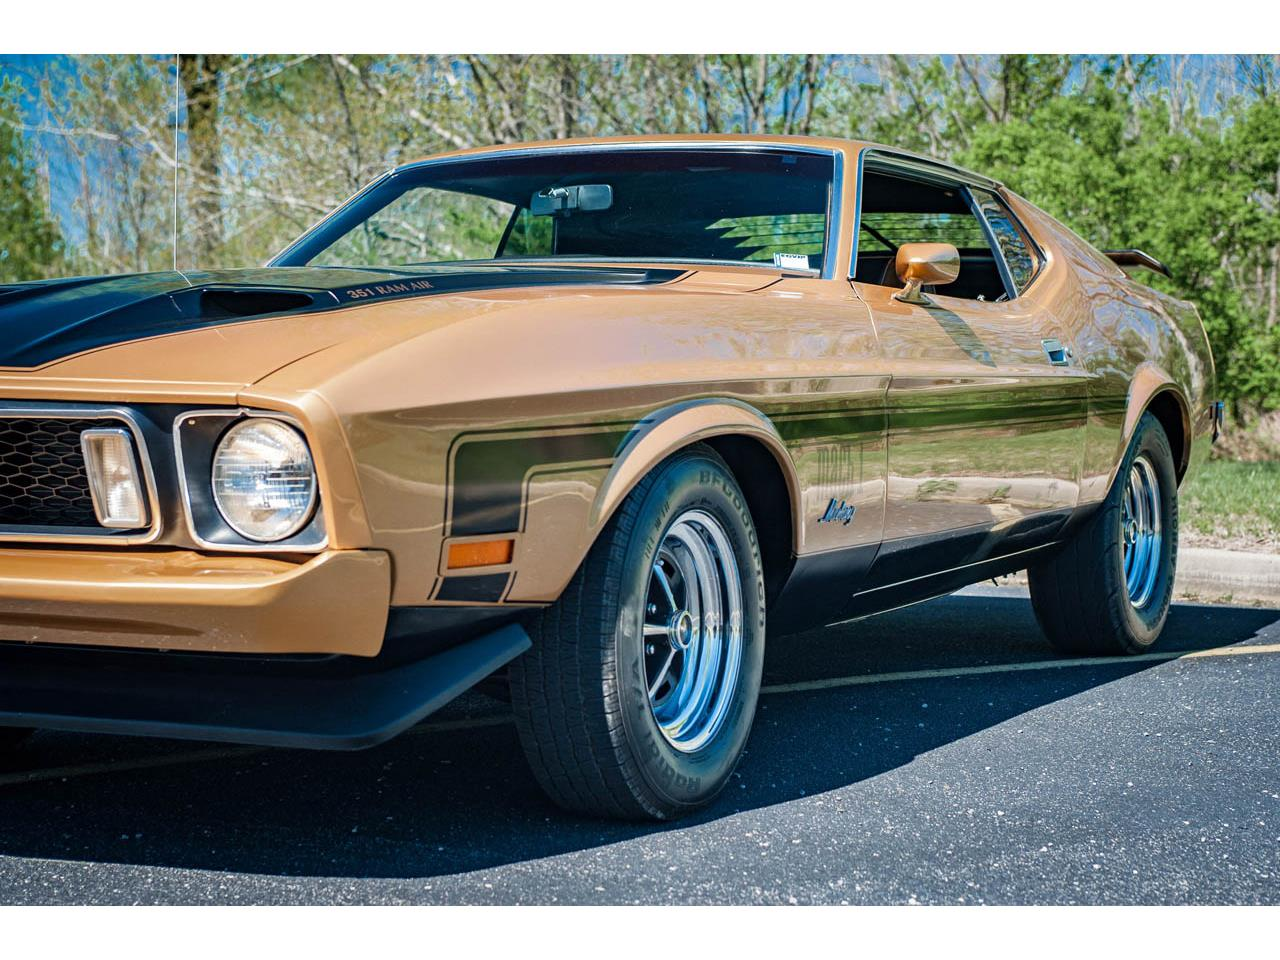 Large Picture of Classic 1973 Ford Mustang located in Illinois - $34,500.00 - QB8T